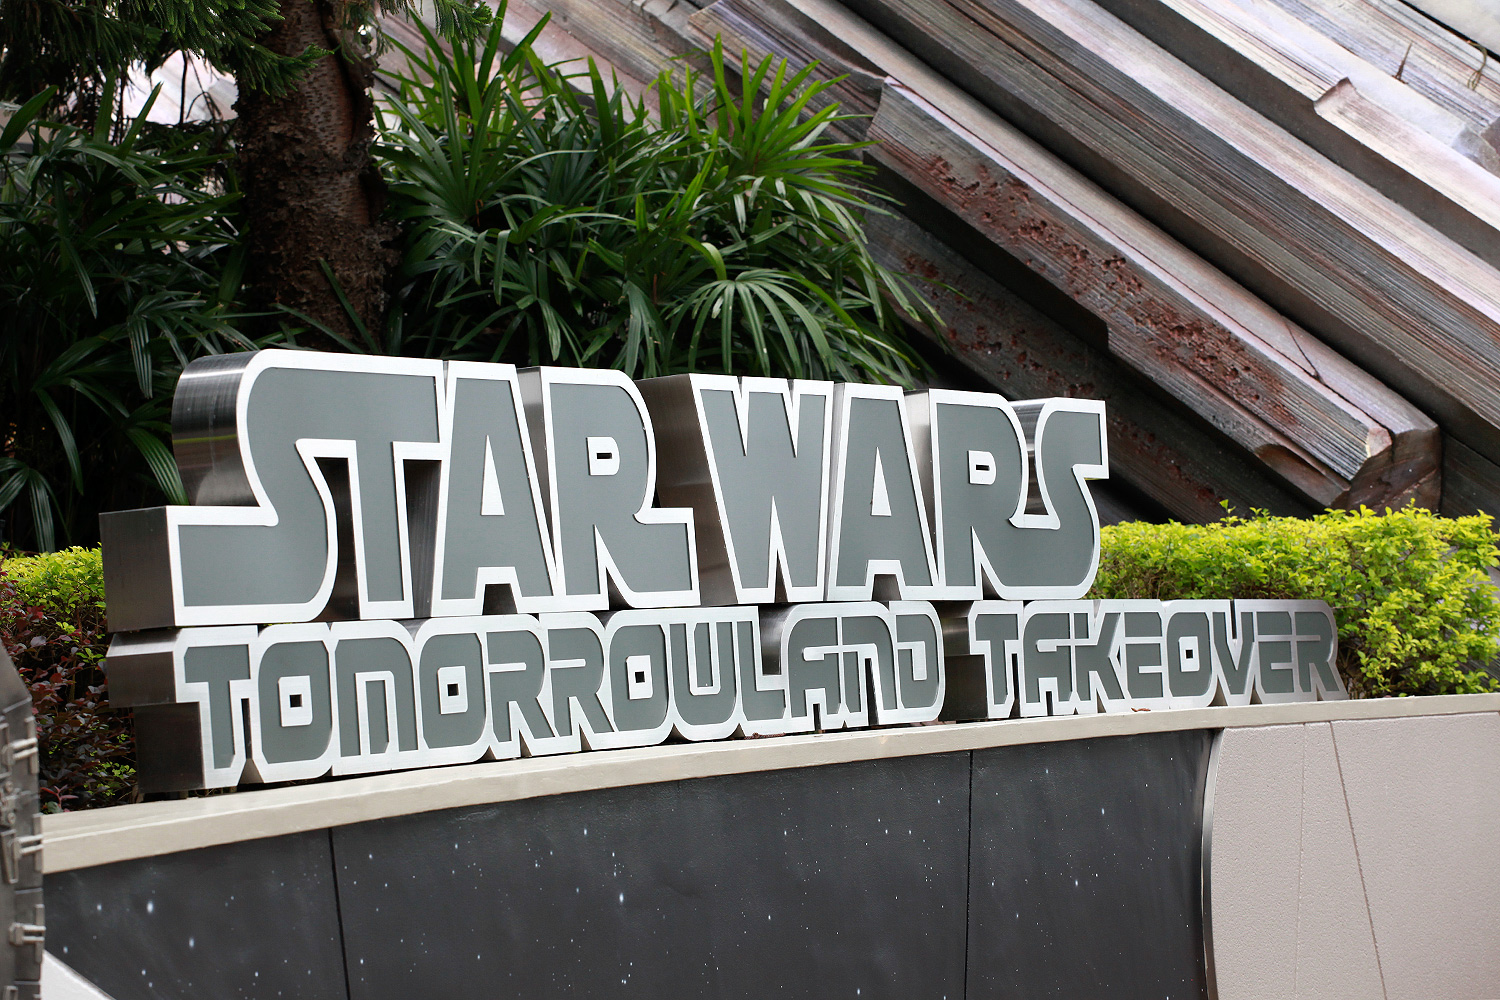 HKDL Star Wars Tomorrowland Takeover